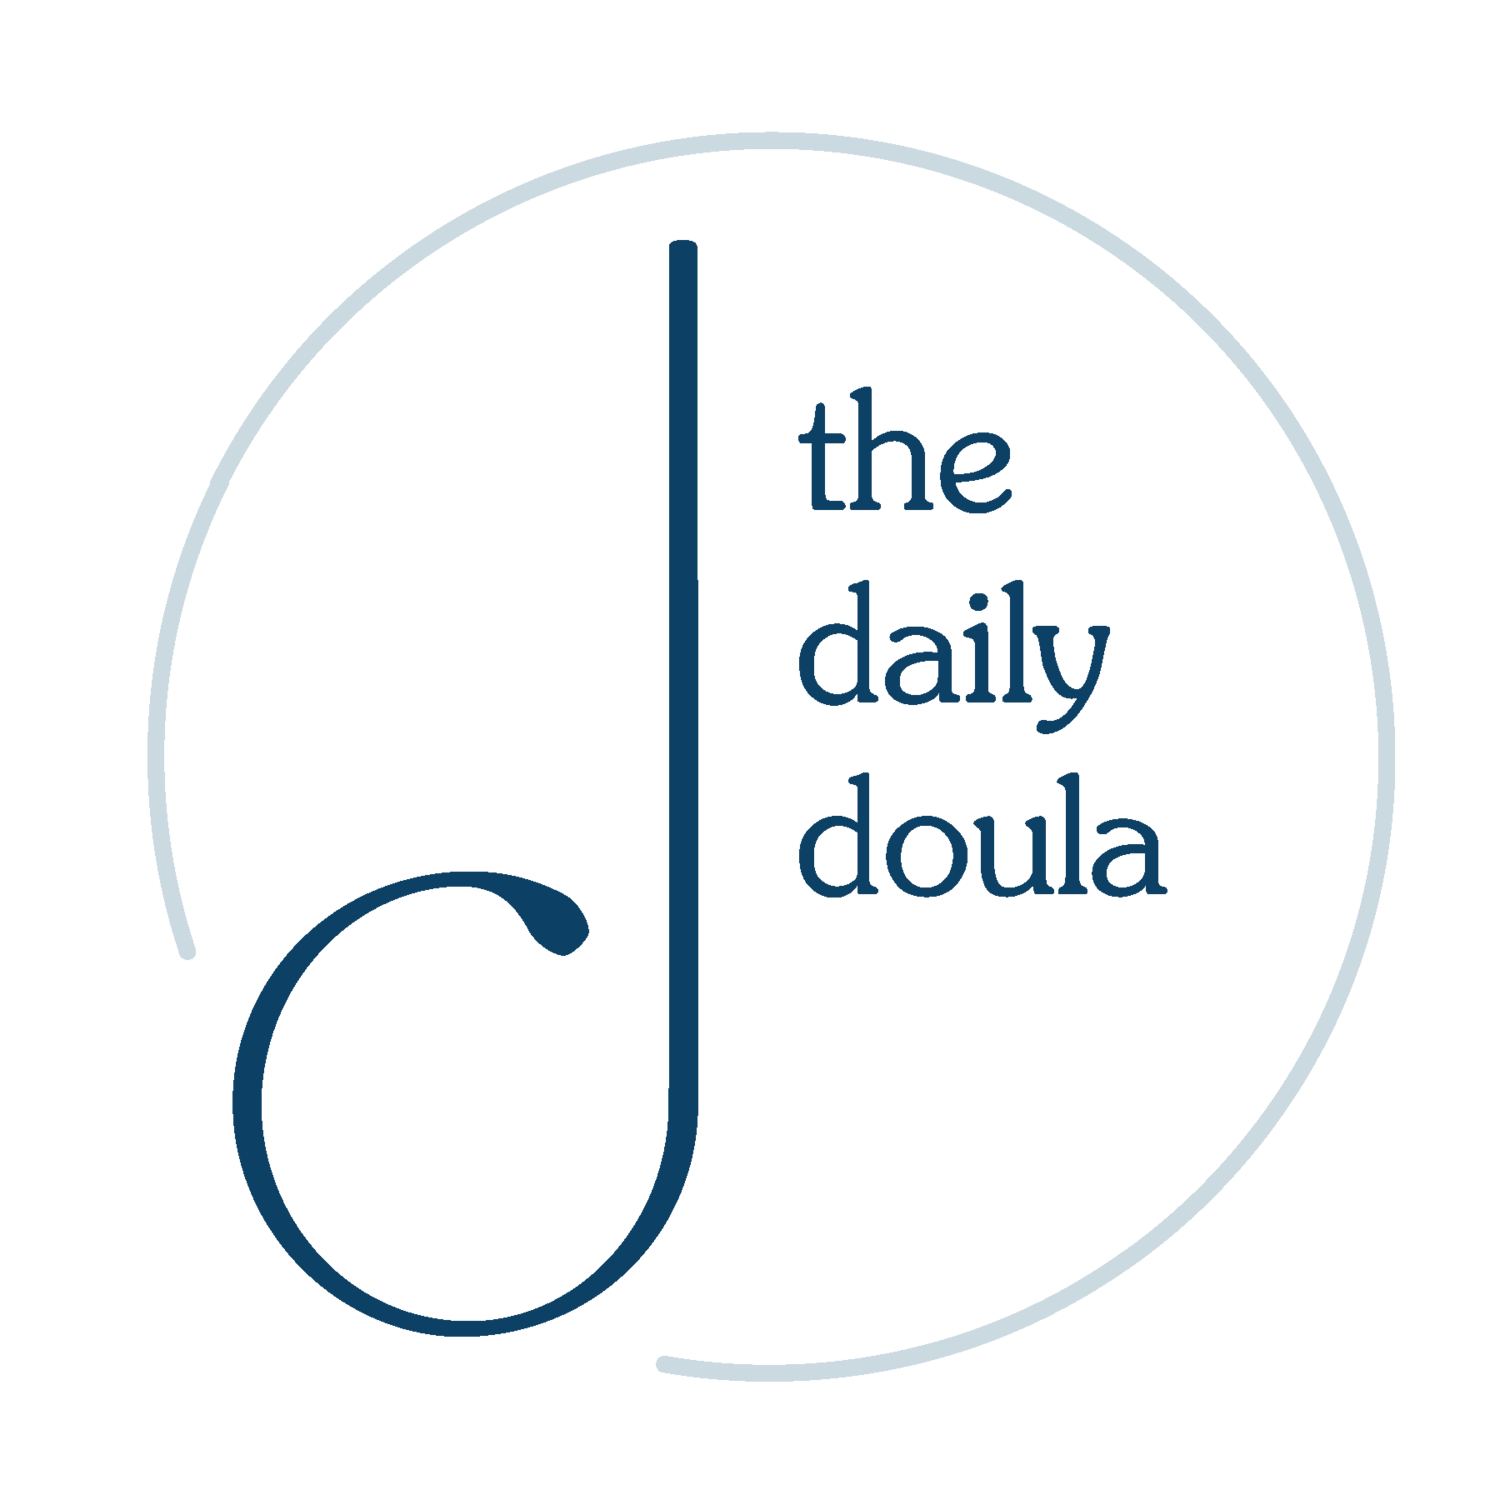 The Daily Doula